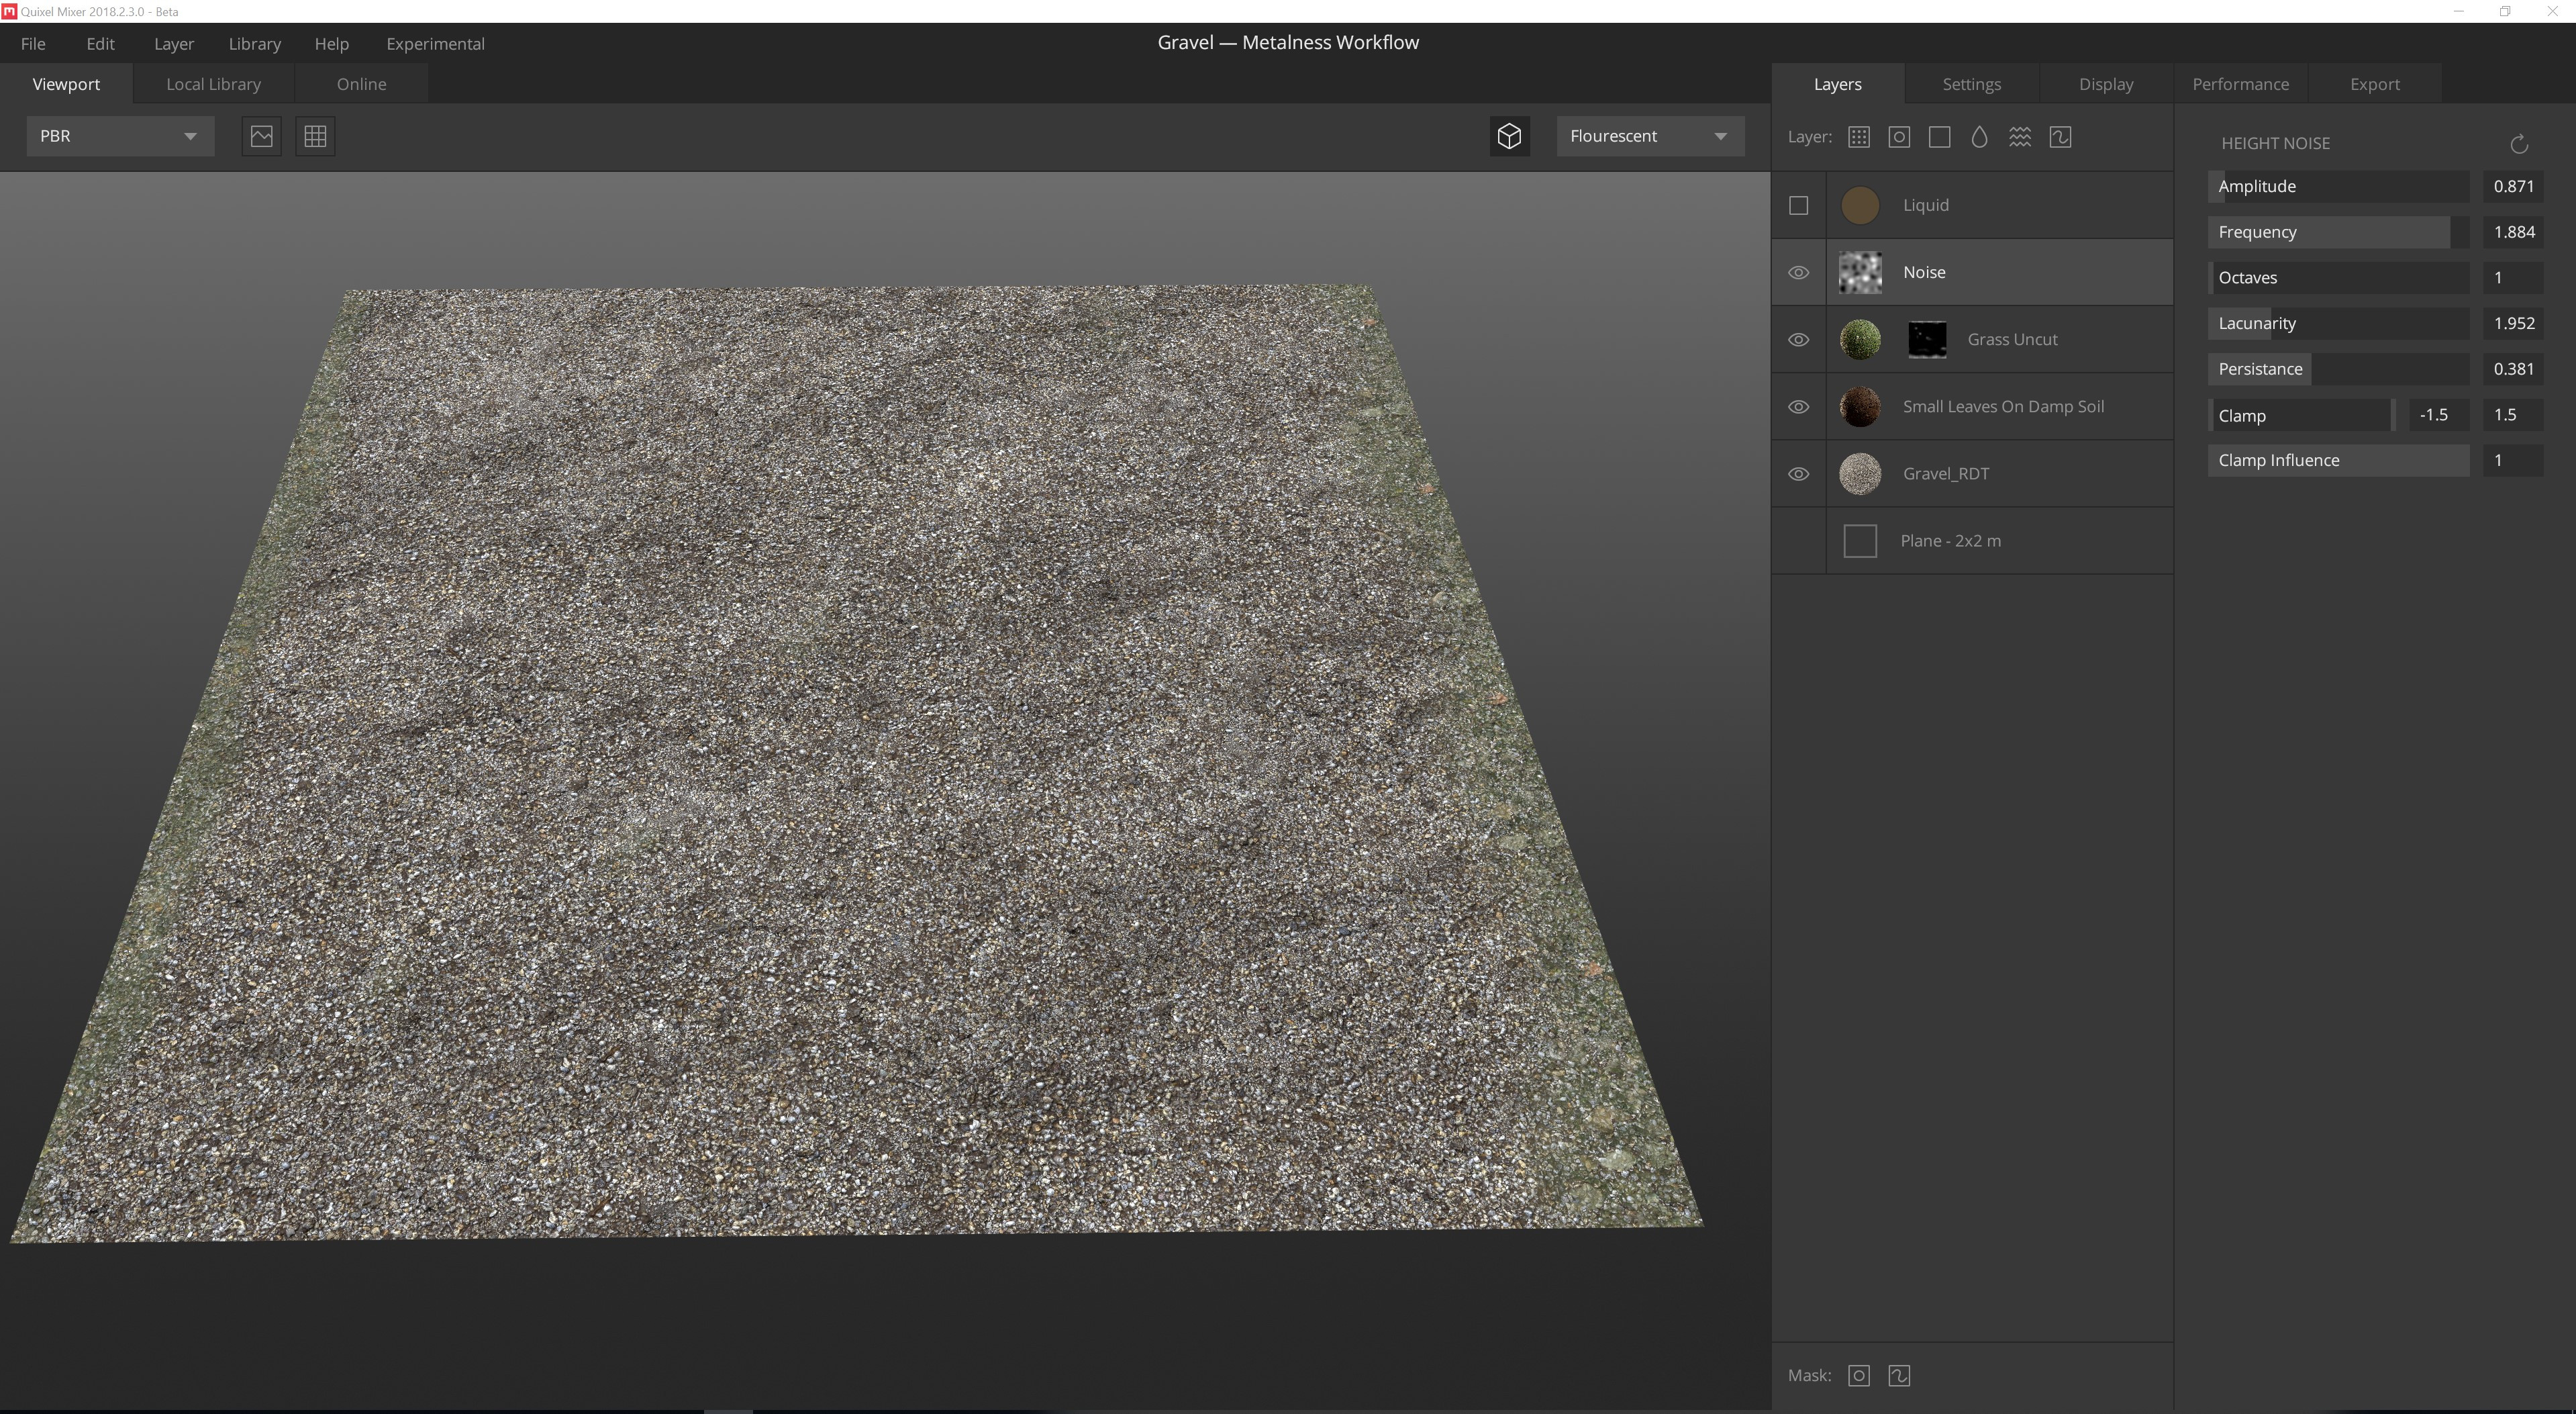 Using Quixel Mixer for my base layer for the Gravel.